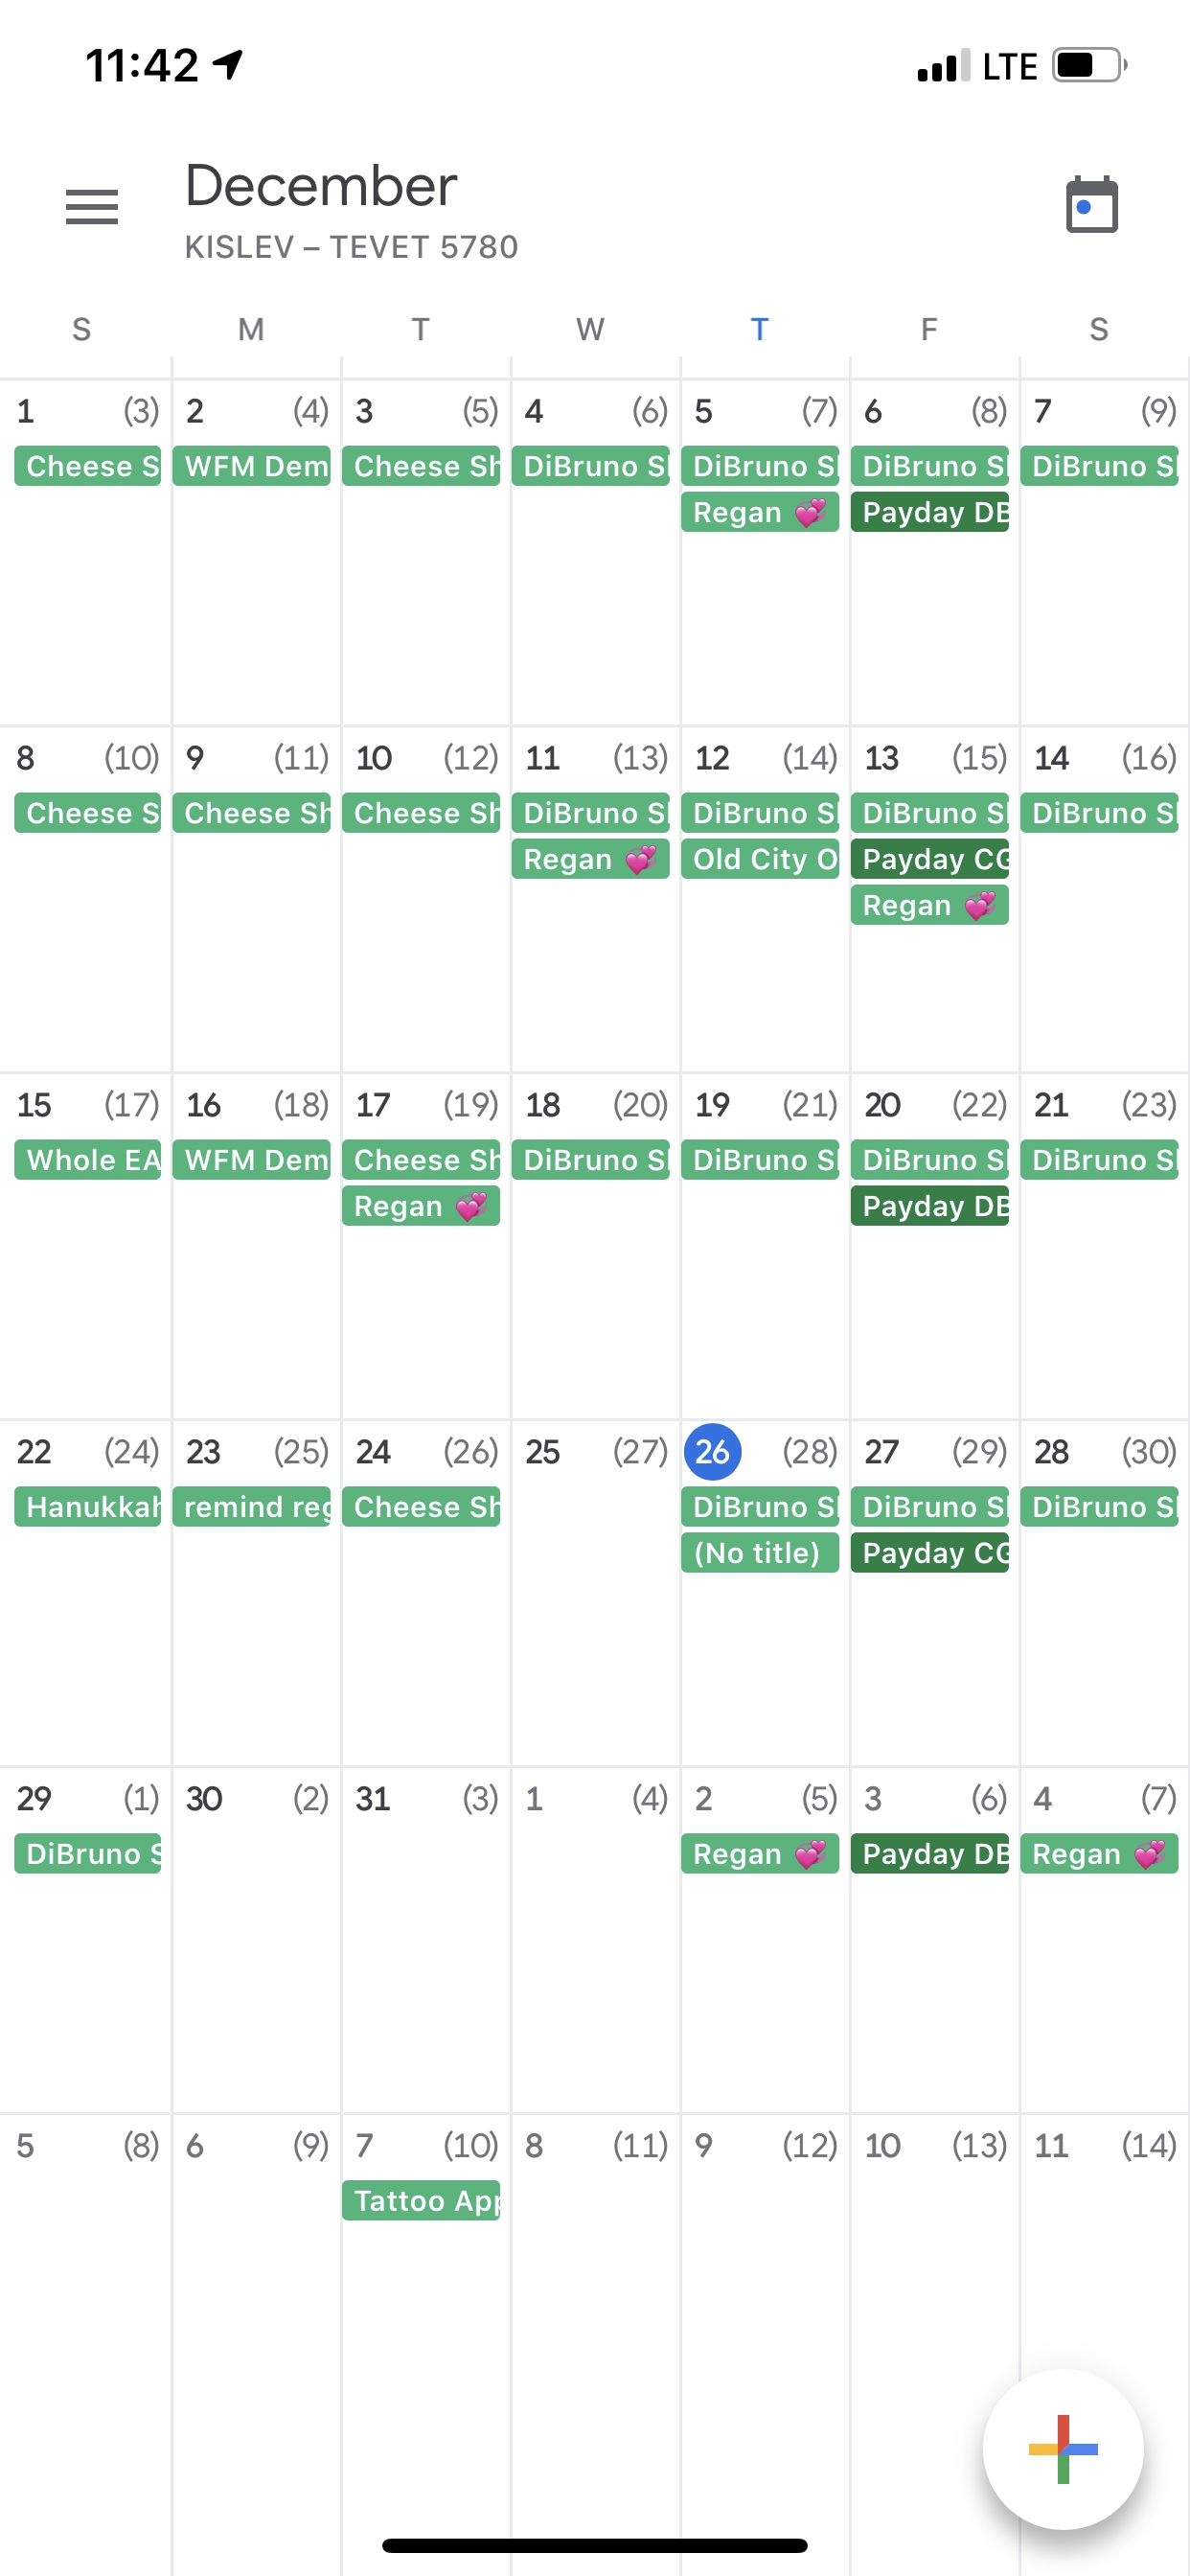 How To Restore Calender Event Colors? - Calendar Community